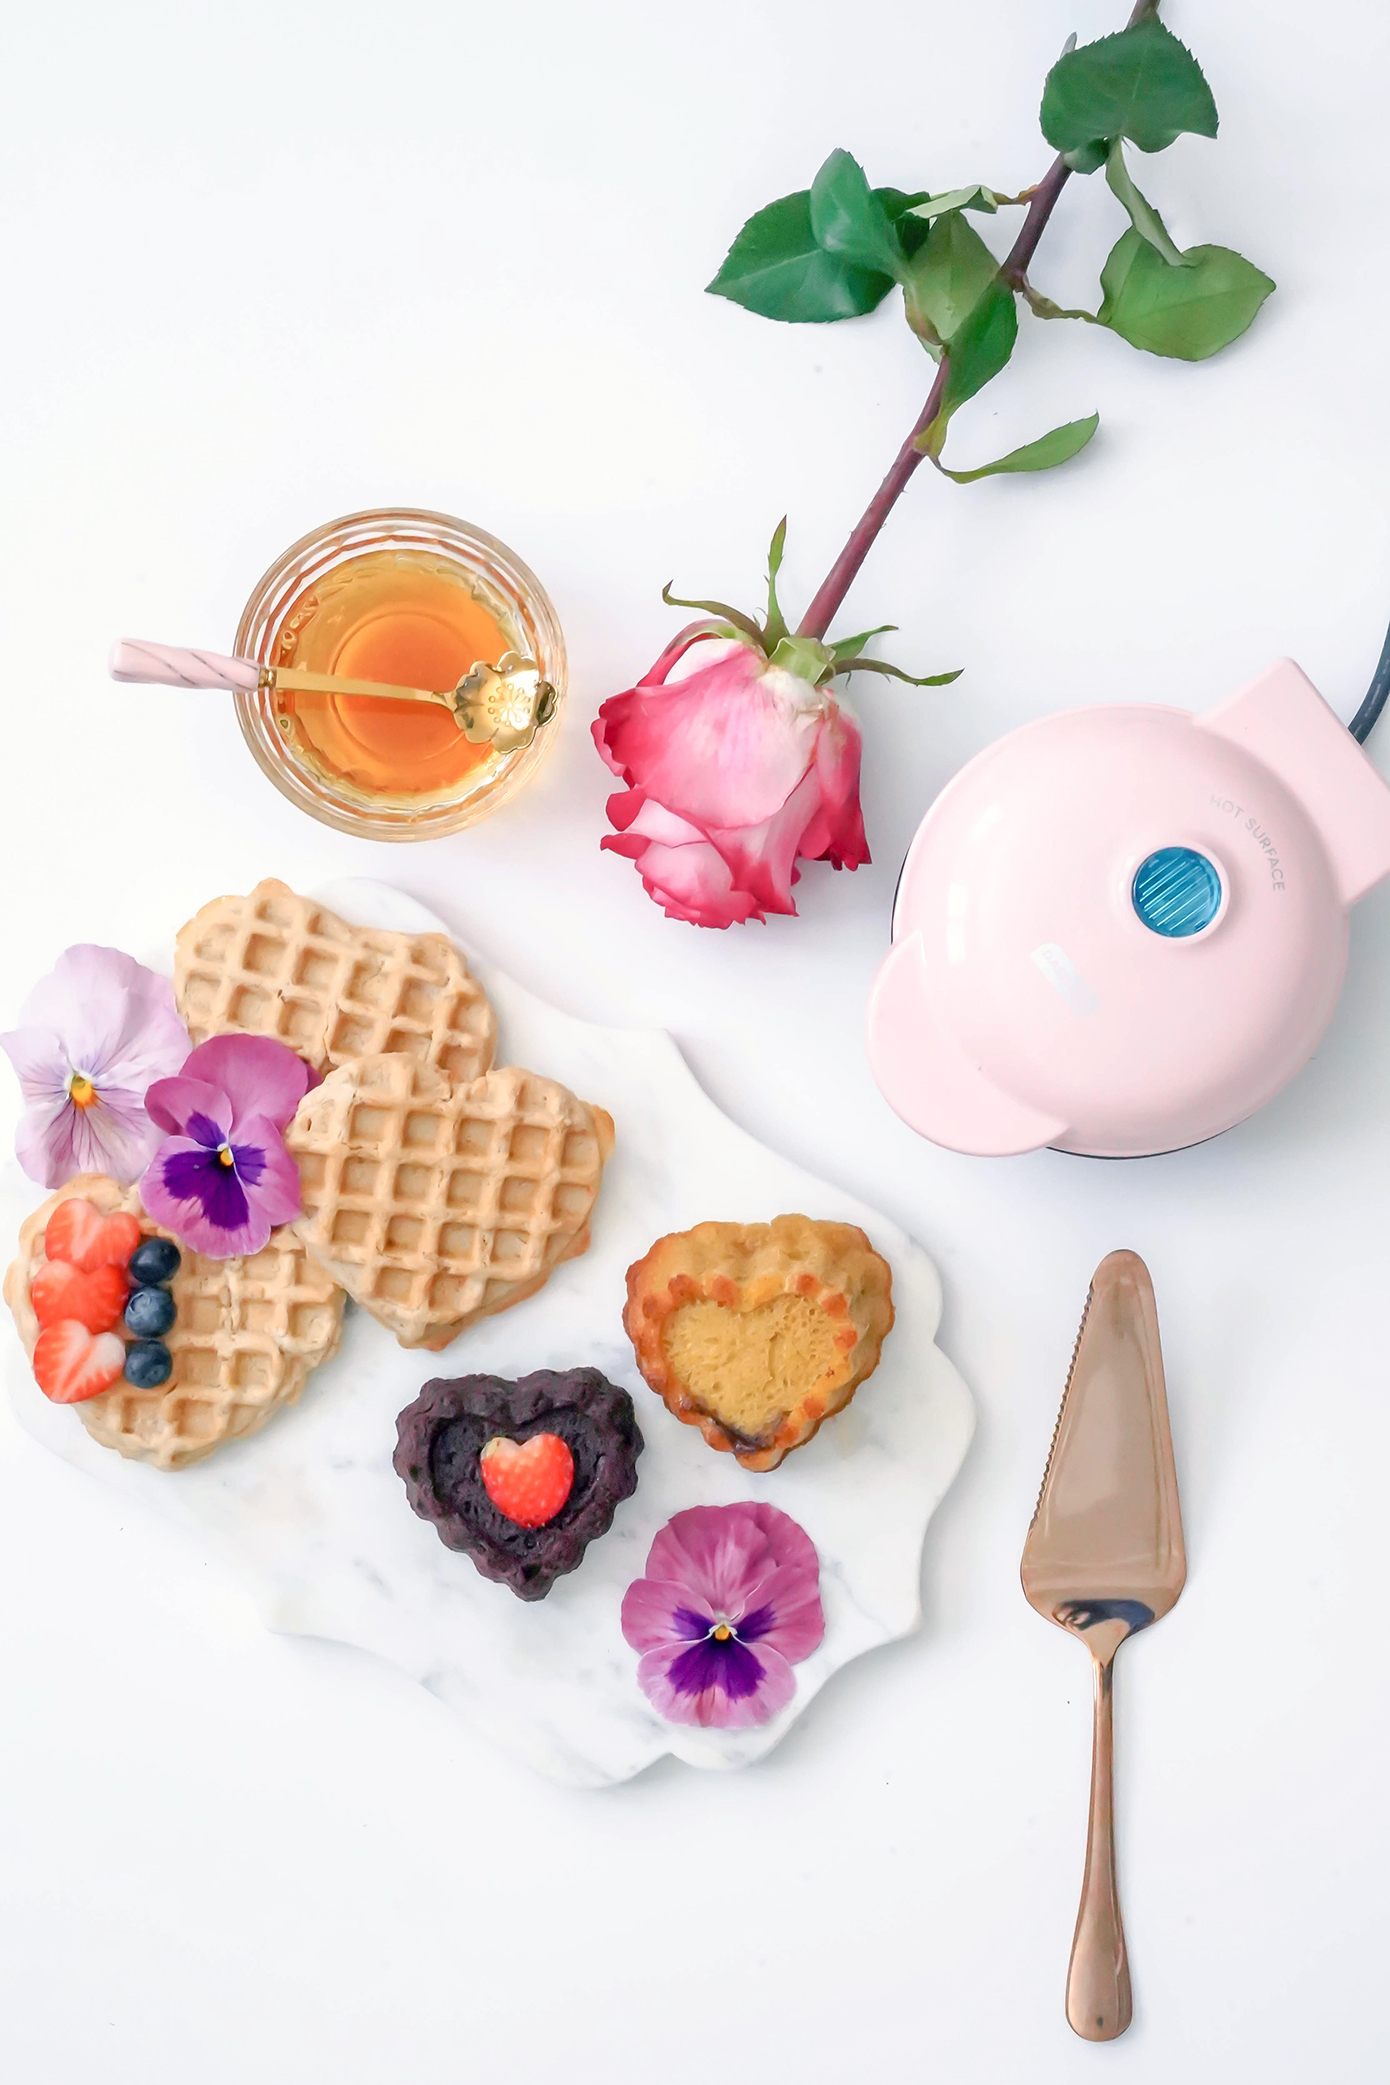 Dash mini heart waffle maker in pink, Gluten-Free Vegan Mini Heart Waffles, Heart Brownies, Heart Blueberry Muffins